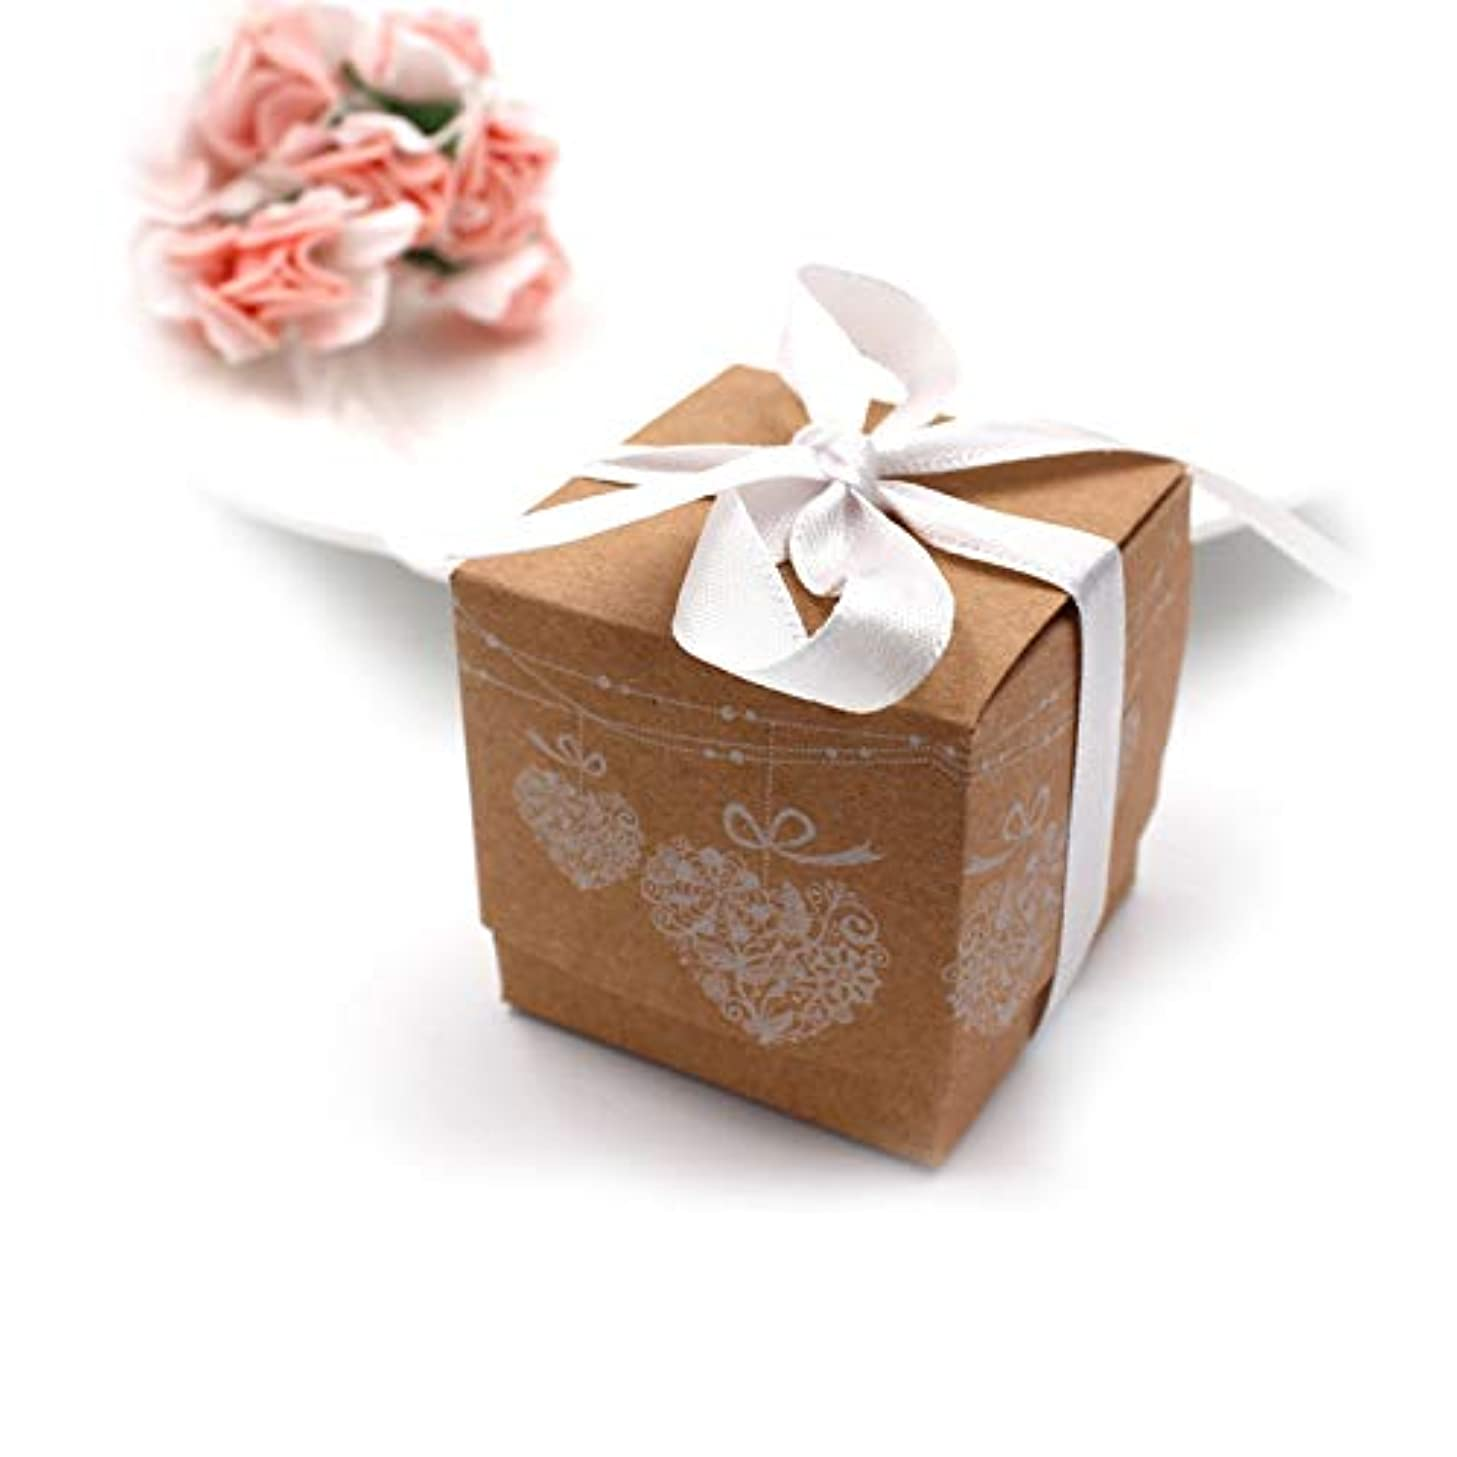 50Pcs Small Kraft Boxes,Christmas Paper Candy Boxes,Vintage Style Box with Ribbon,Candy Treat Gift Wrap Box for Bridal Shower Wedding Birthday Christmas Party Favor Decorations